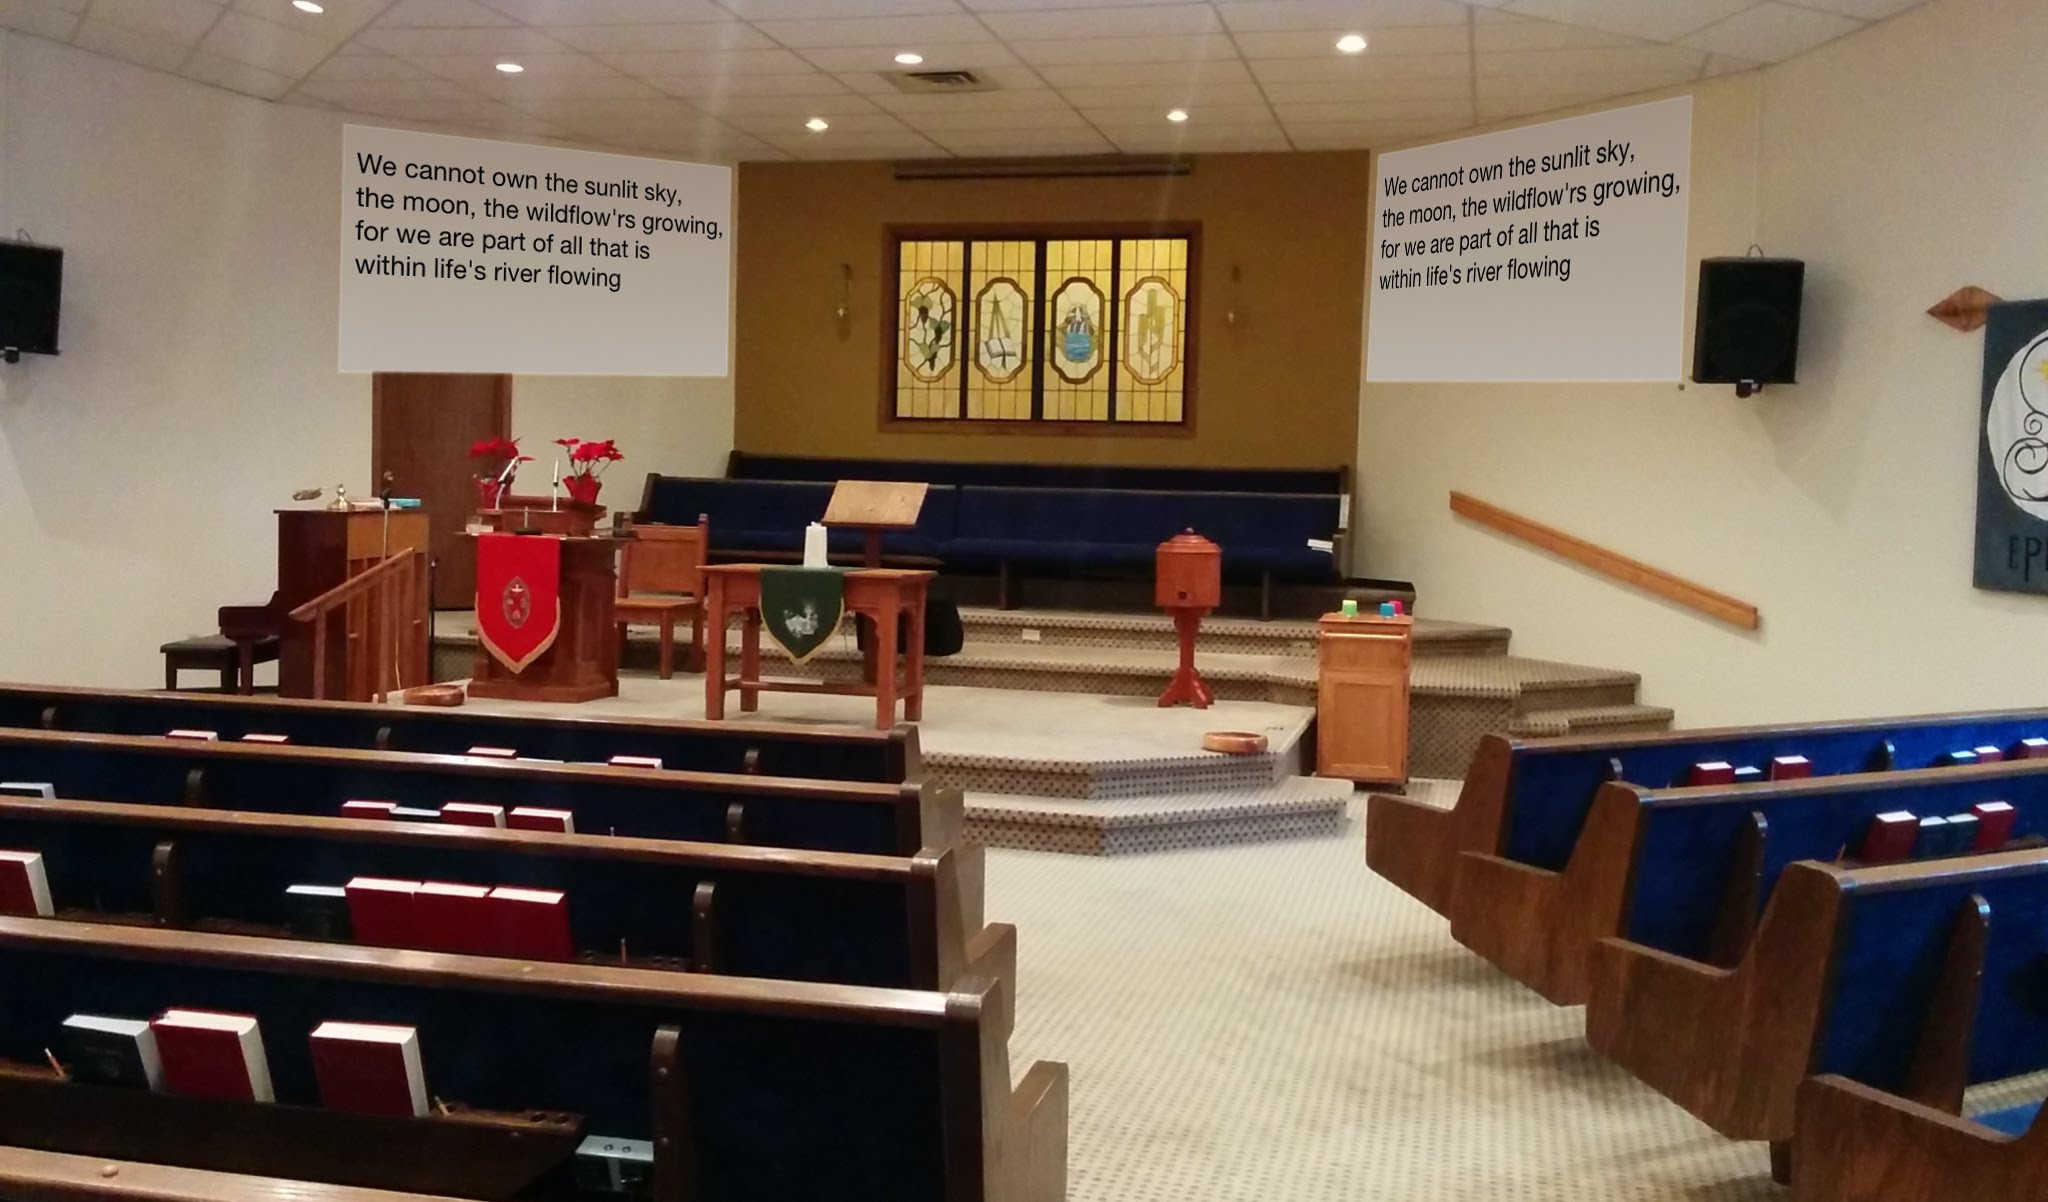 Sanctuary with text projected on screens